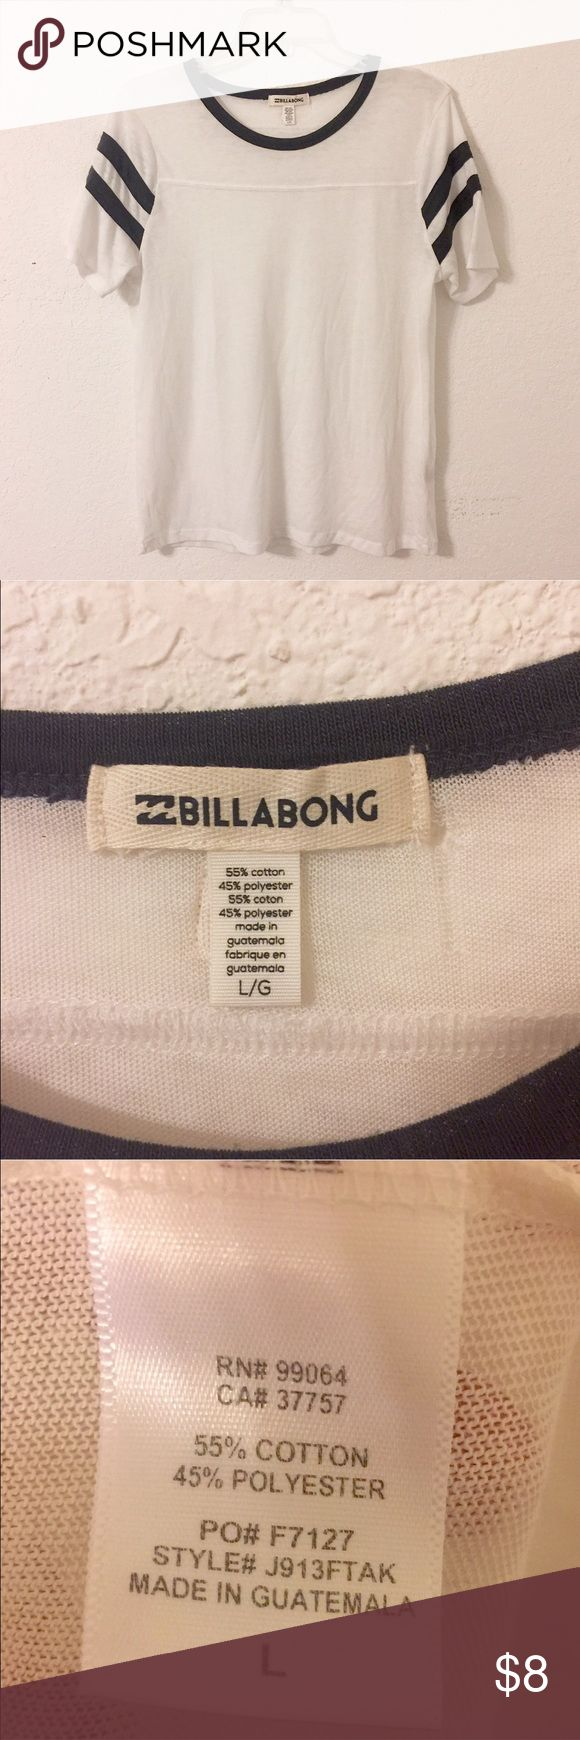 Billabong varsity jersey tee Perfect casual jersey tee from Billabong! Super thin and super comfy. I'm usually a size small and love the look of this large size tee on me. Can fit anyone who's small, medium or large and looks super cute tied in a knot in the front. Has a small hole in the back near the tag at the top as seen in picture. Other than the hole there is no other damage or stains! Will model upon request. PacSun Tops Tees - Short Sleeve